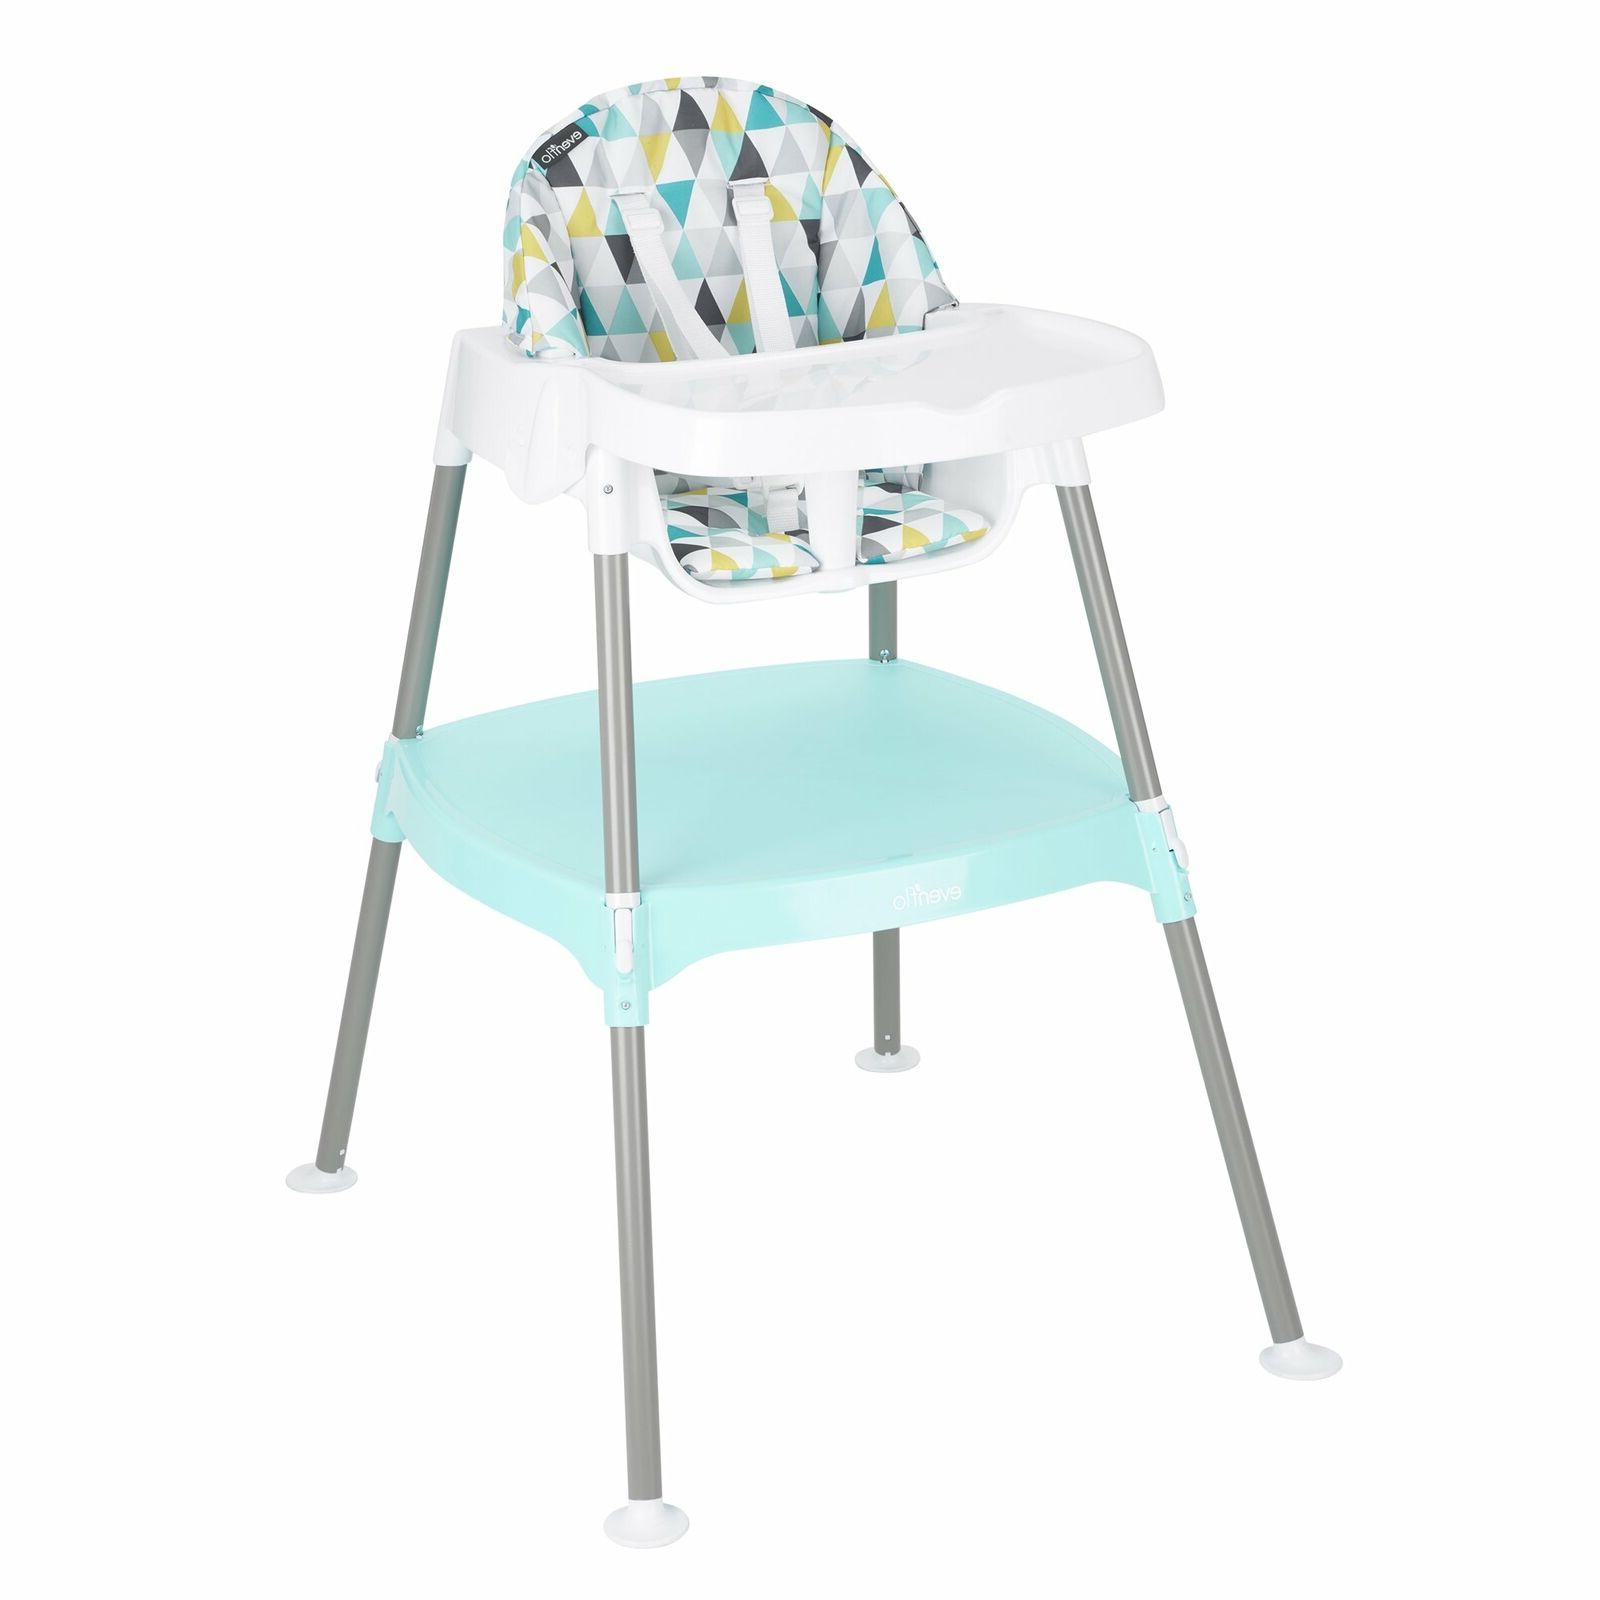 Evenflo 4-in-1 Eat & Grow Convertible High Chair Prism Trian